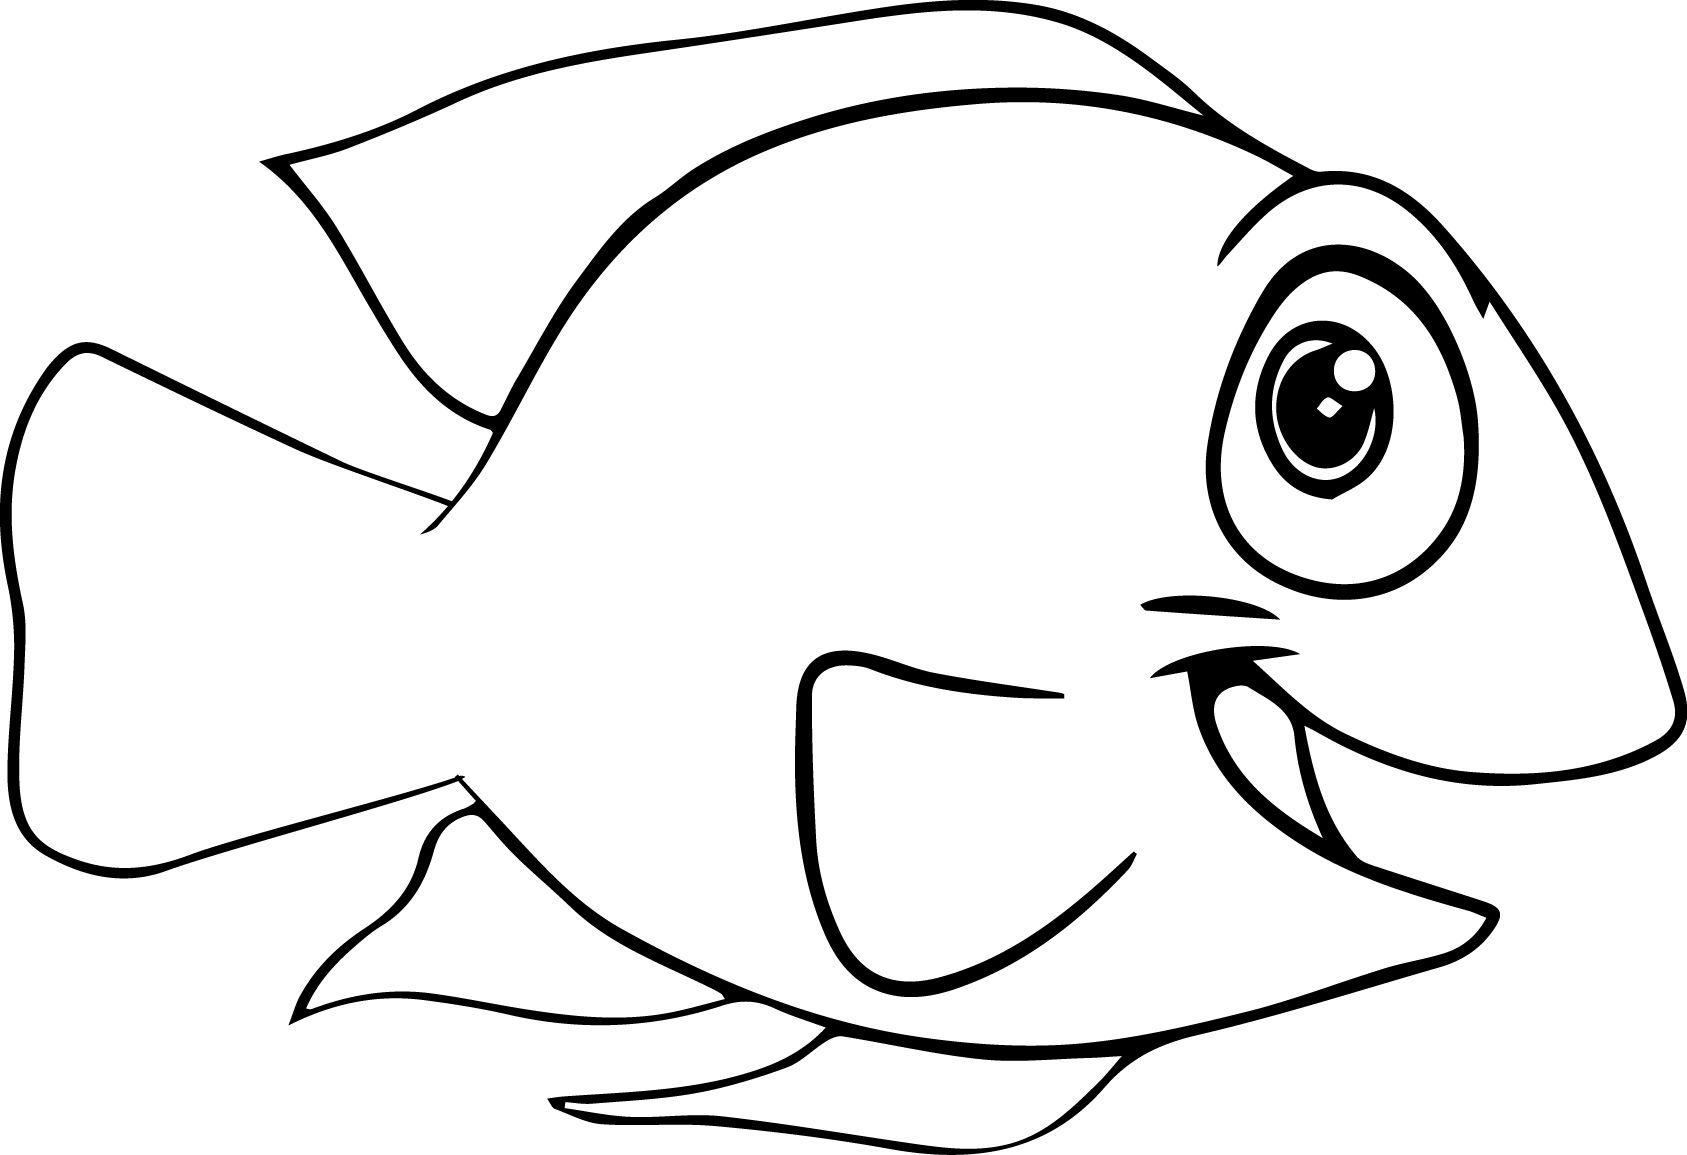 rainbow fish coloring pages Cute Fish Coloring Pages for